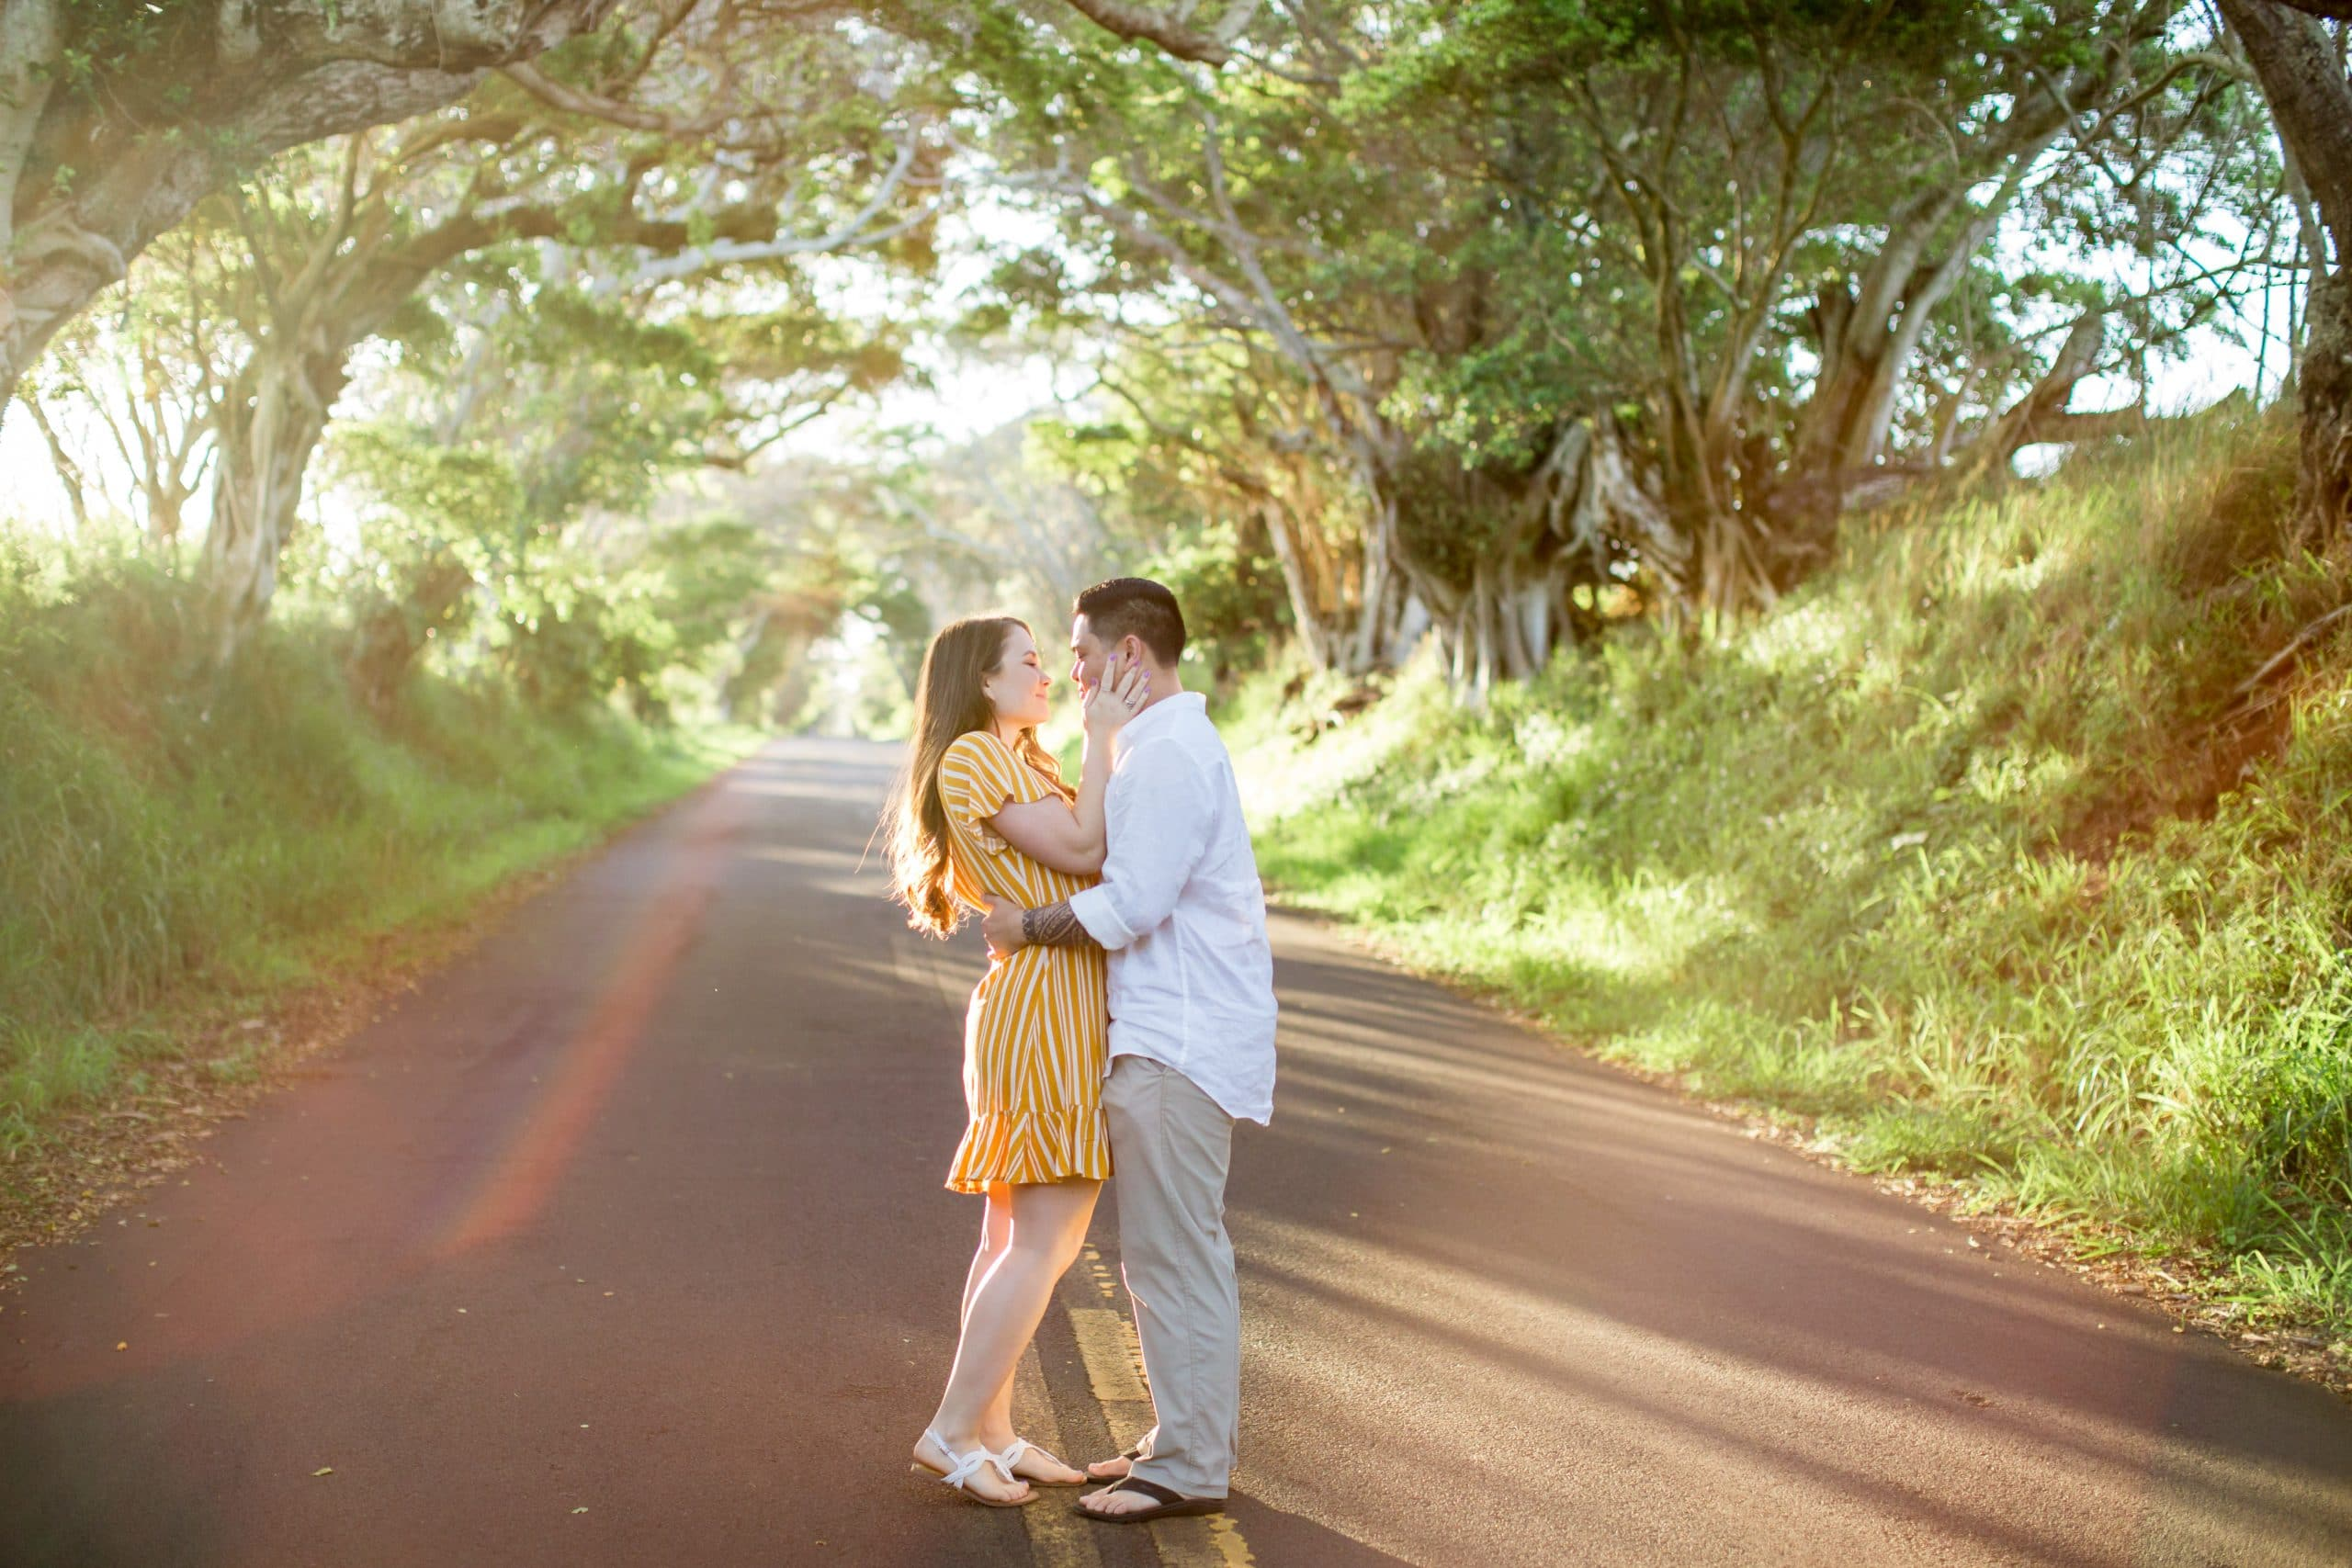 Hire_A_Professional_Proposal_Photographer_Second_Location